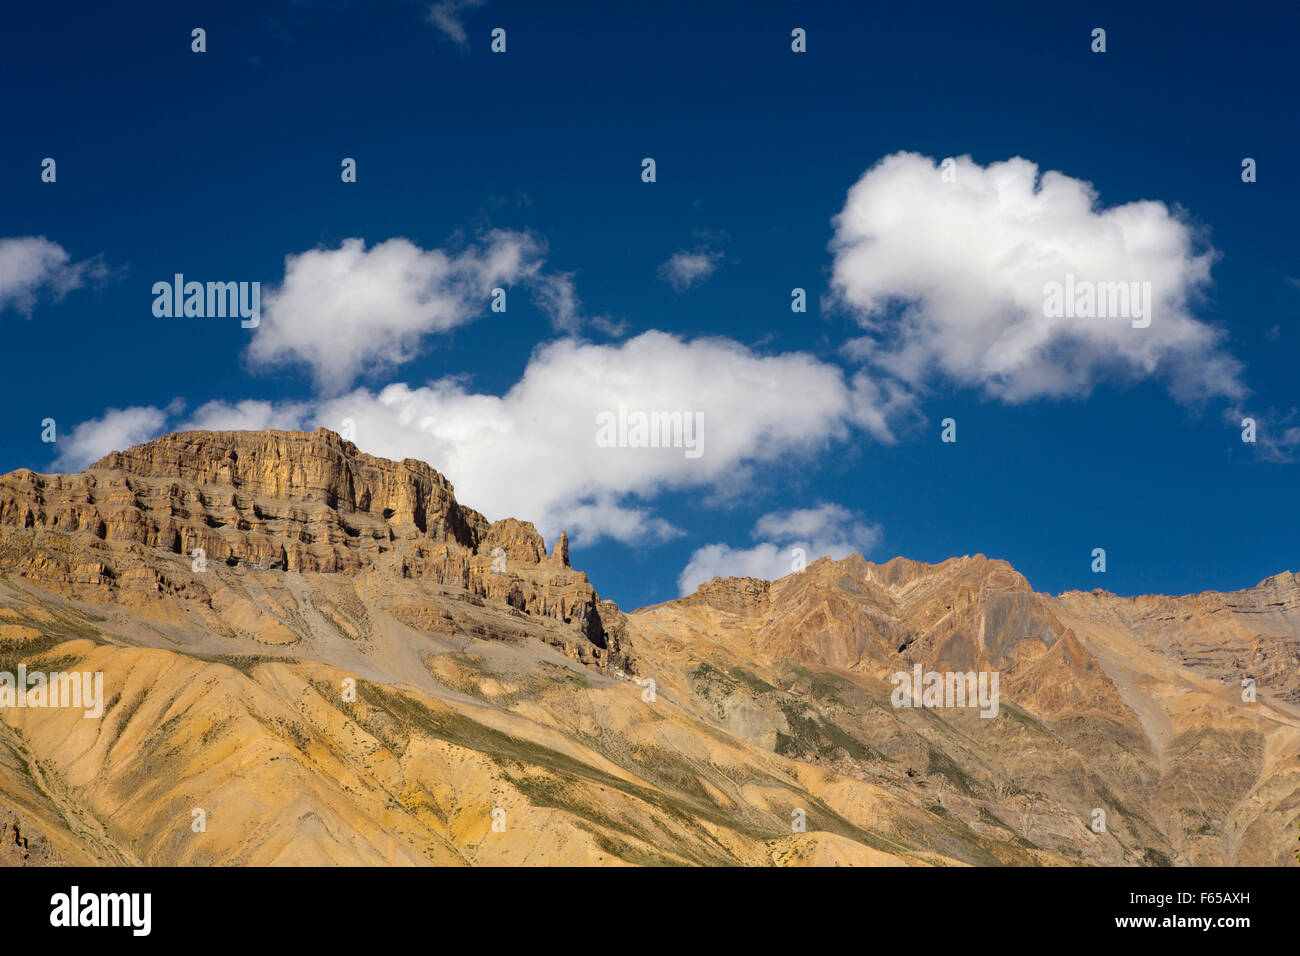 India, Himachal Pradesh, Spiti valley, Shego, rocky cold desert cliff against blue sky - Stock Image